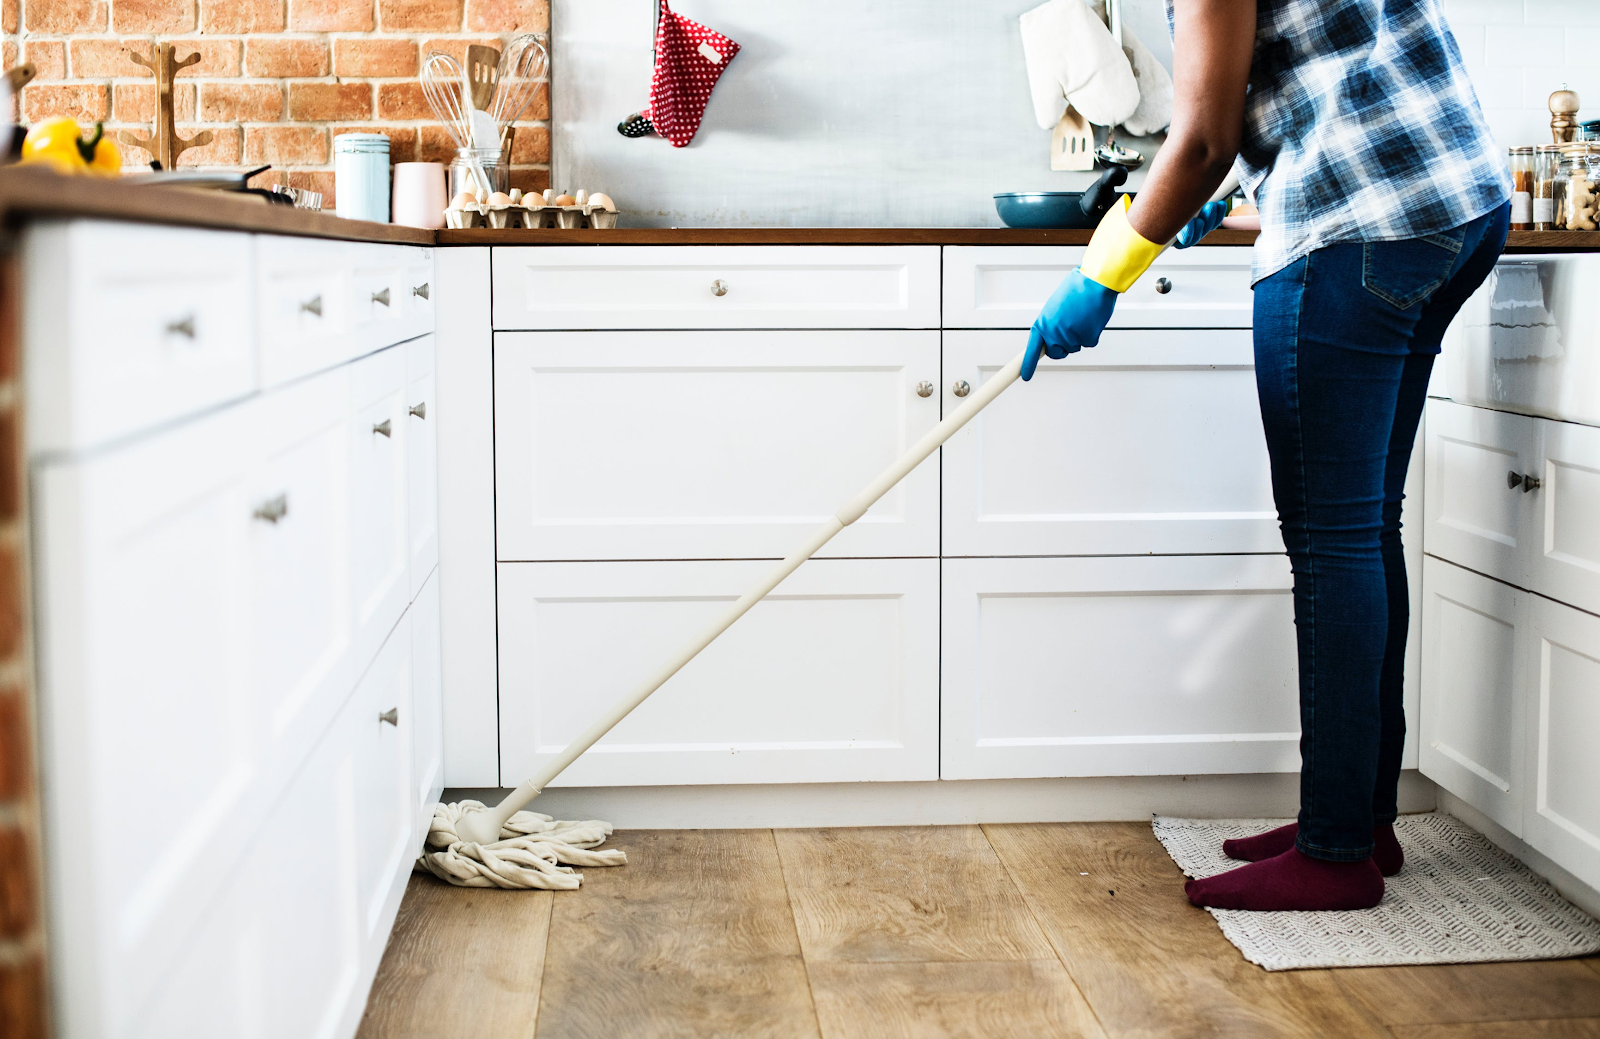 Person mopping kitchen [Image source: https://www.pexels.com/photo/person-using-mop-on-floor-1321730/]